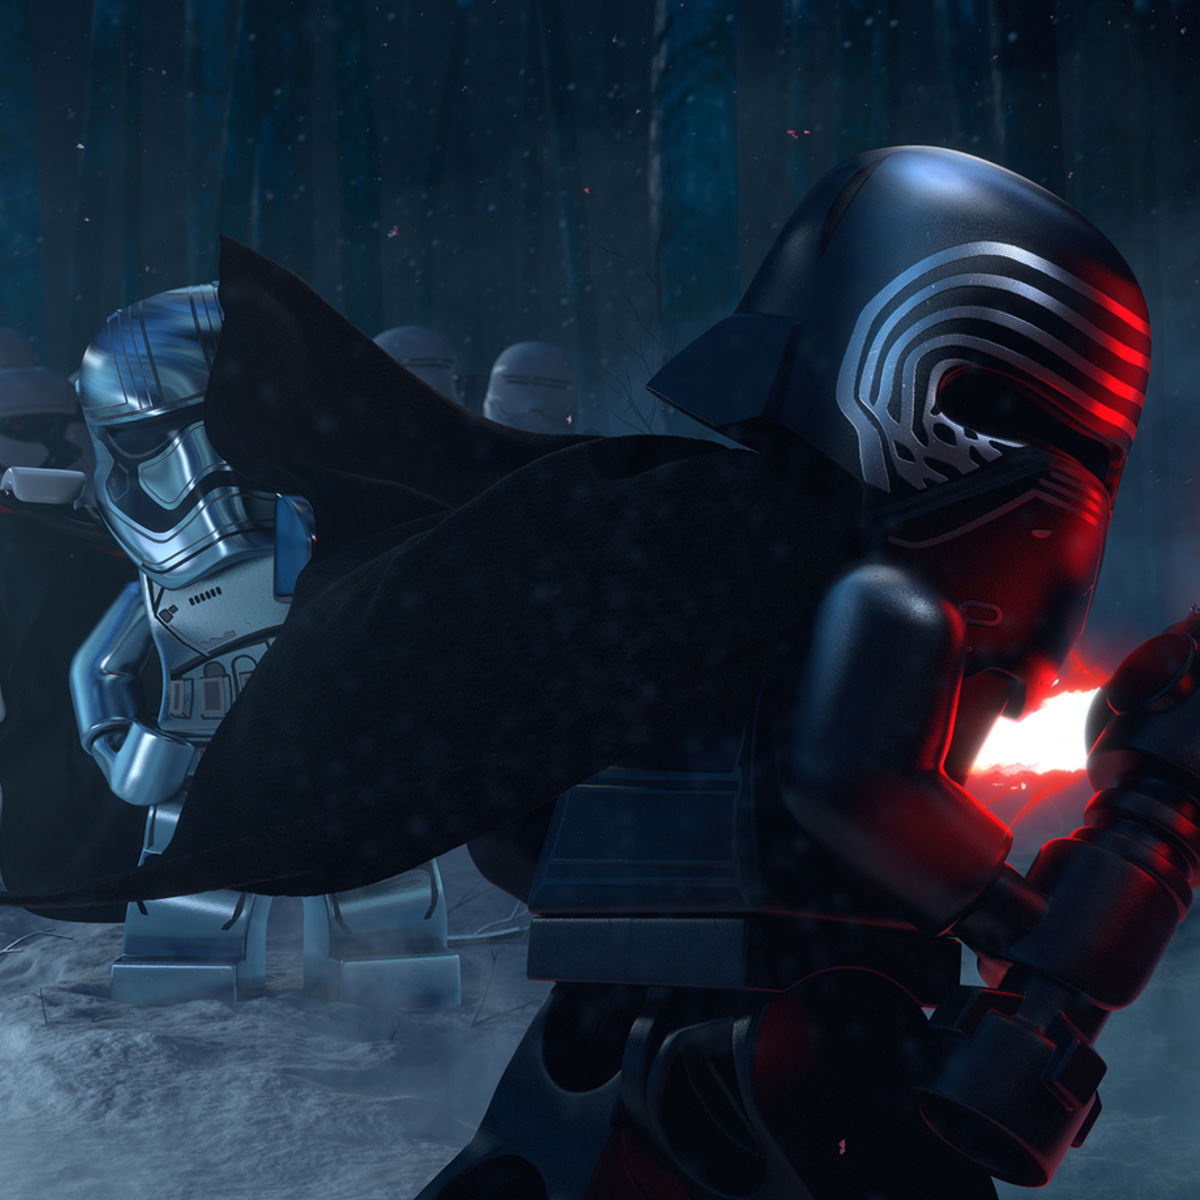 LEGO-Star-Wars-the-Force-Awakens_Ren_Phasma.jpg